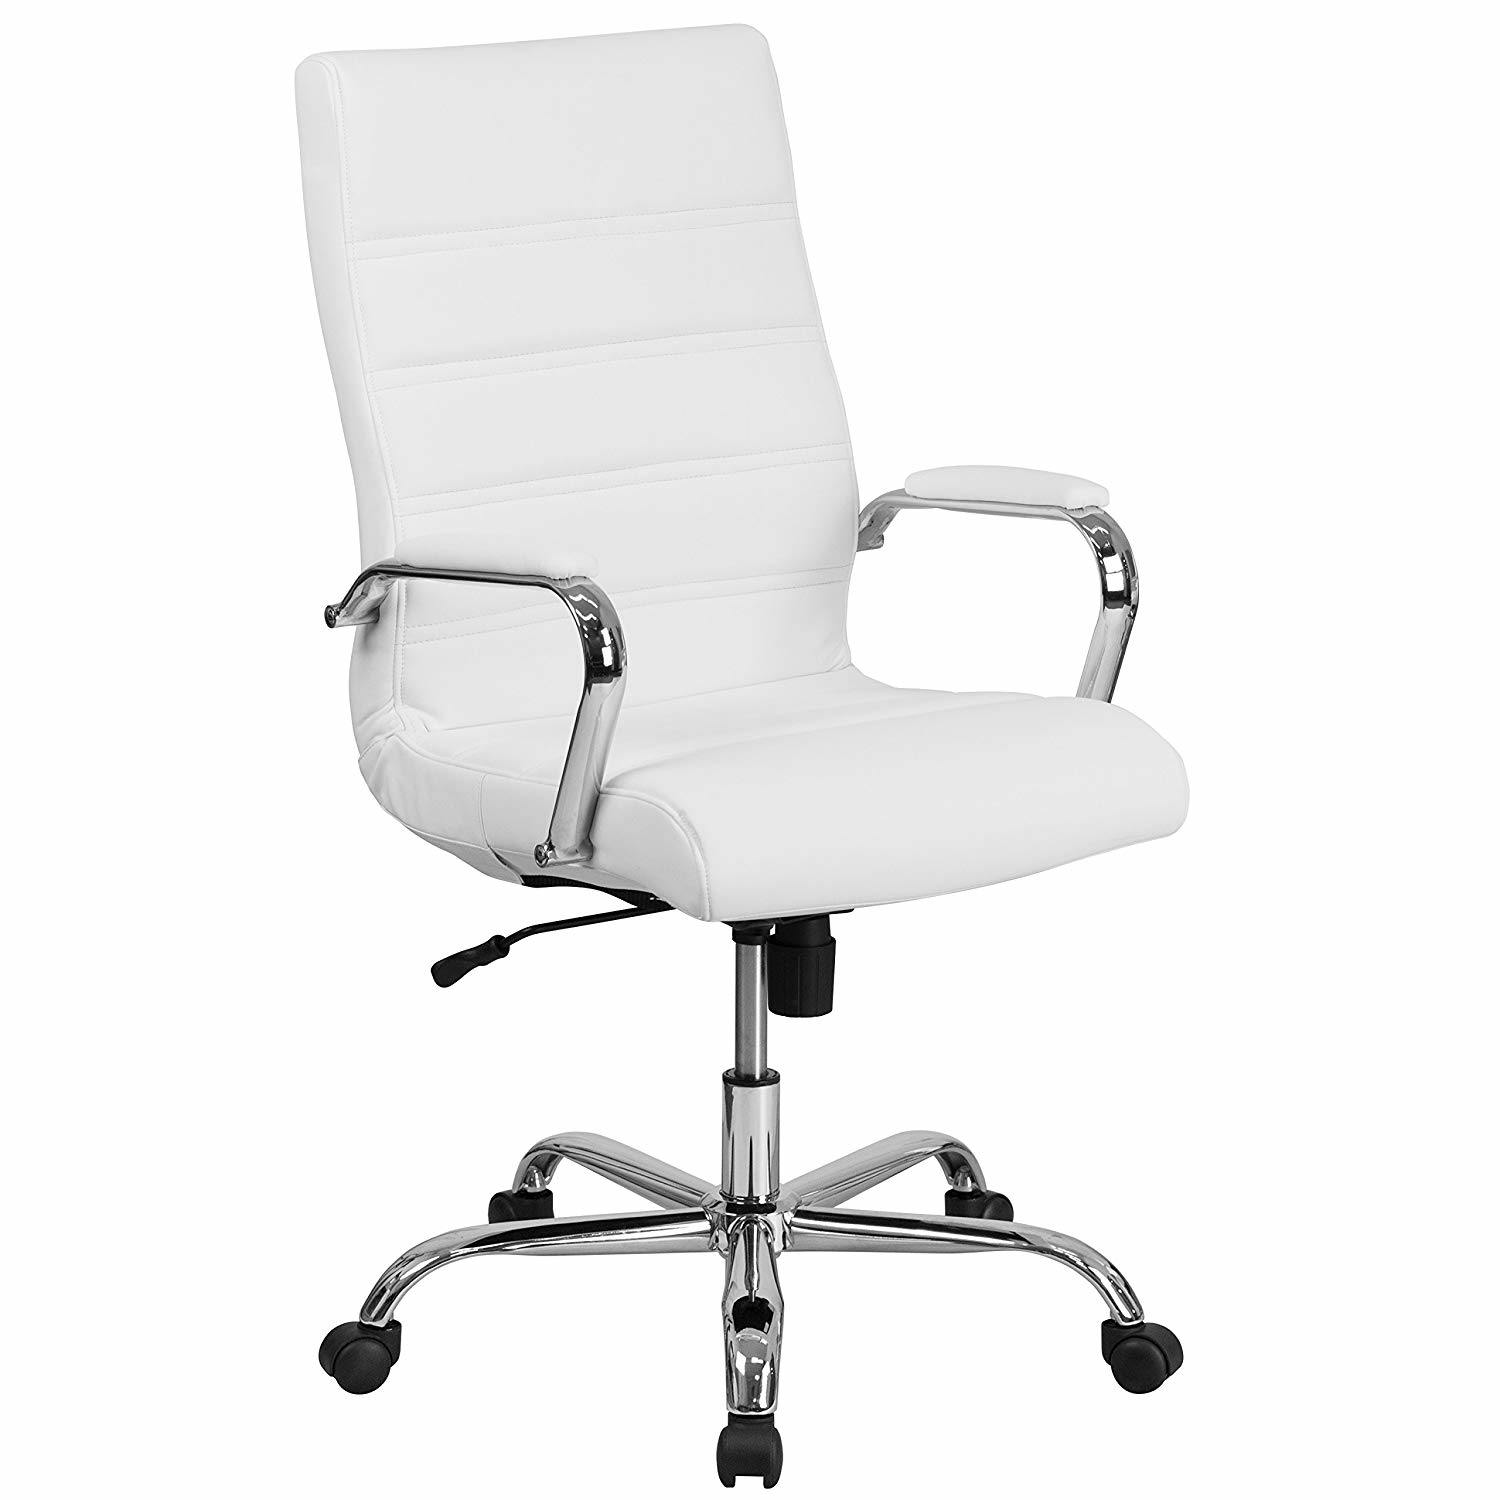 Hot Item High Back White Leather Office Executive Swivel Chair With Chrome Base And Arms Lsa 029wh